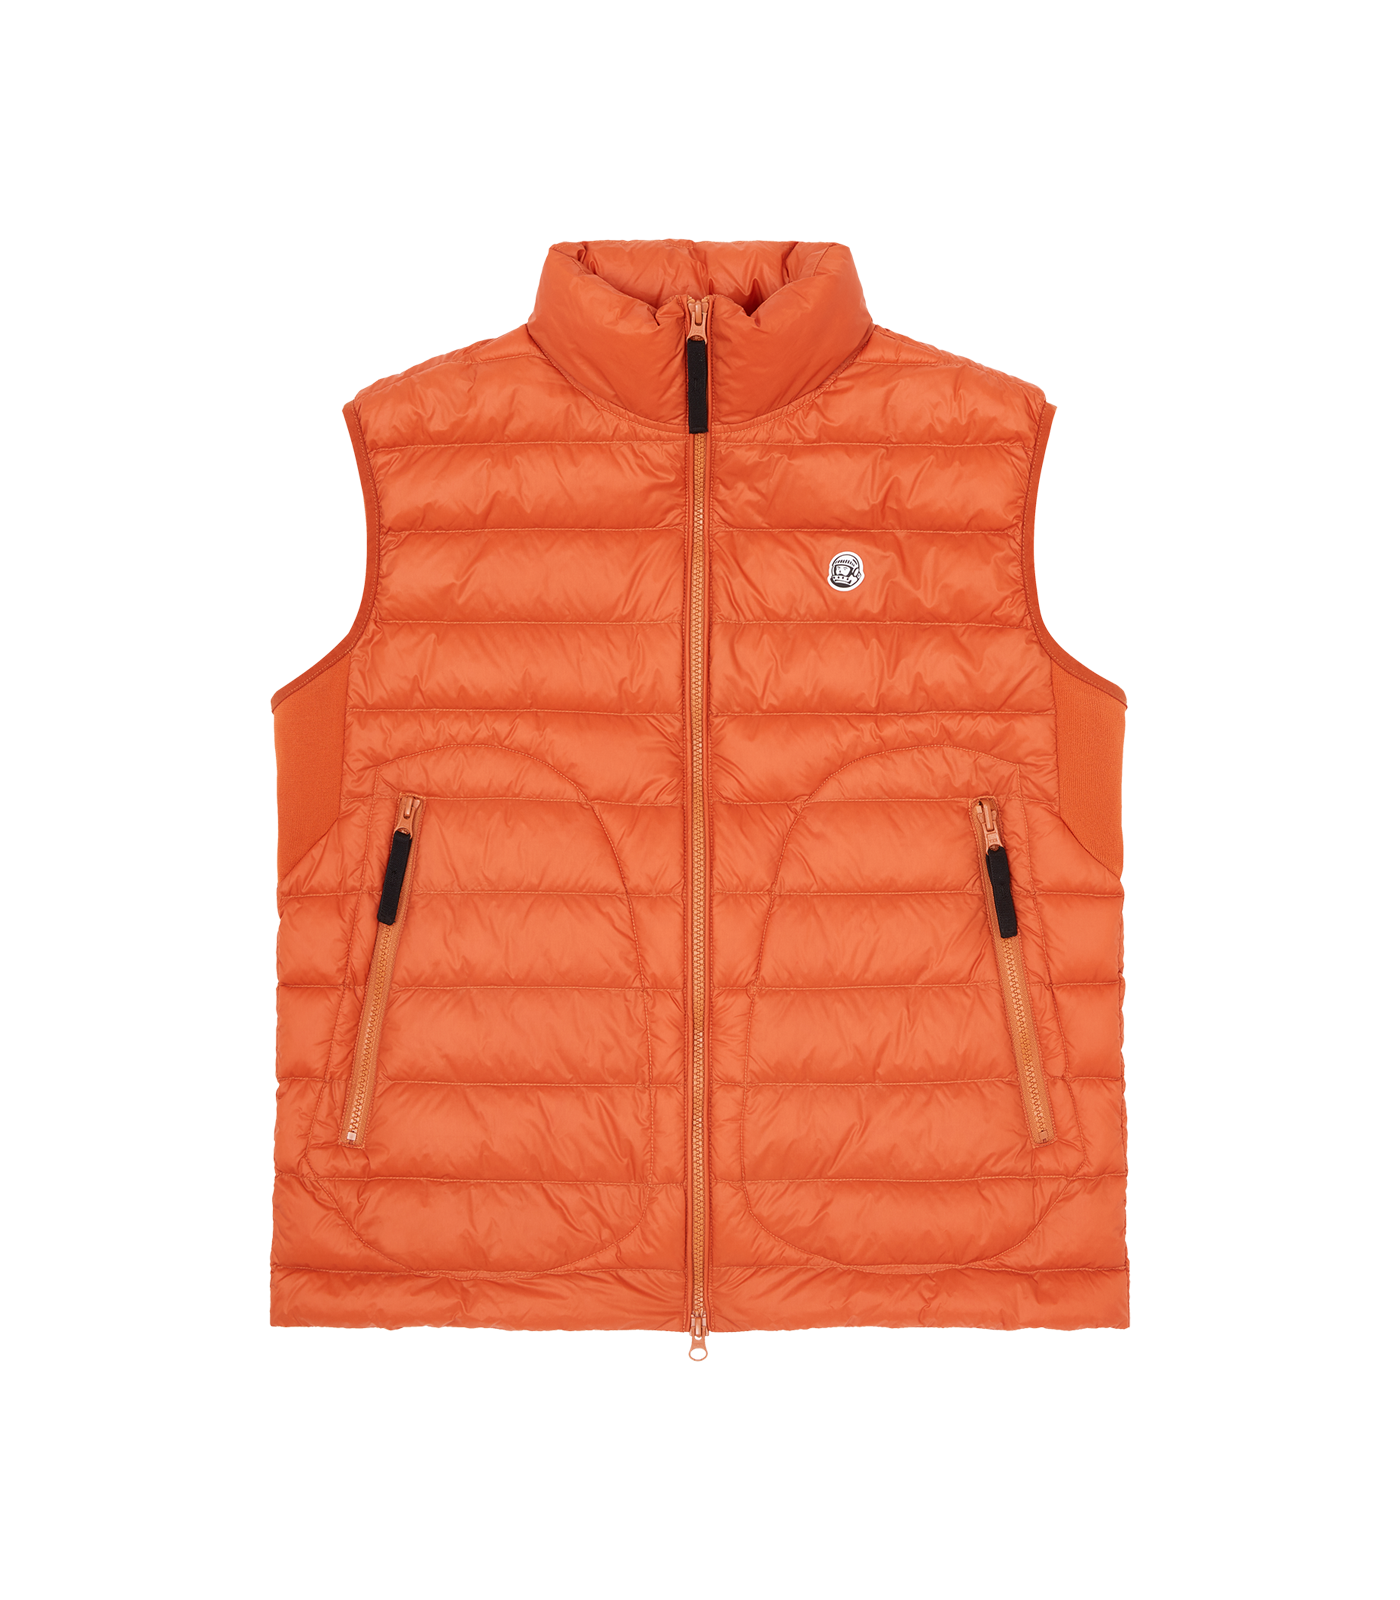 LIGHTWEIGHT DOWN VEST - ORANGE